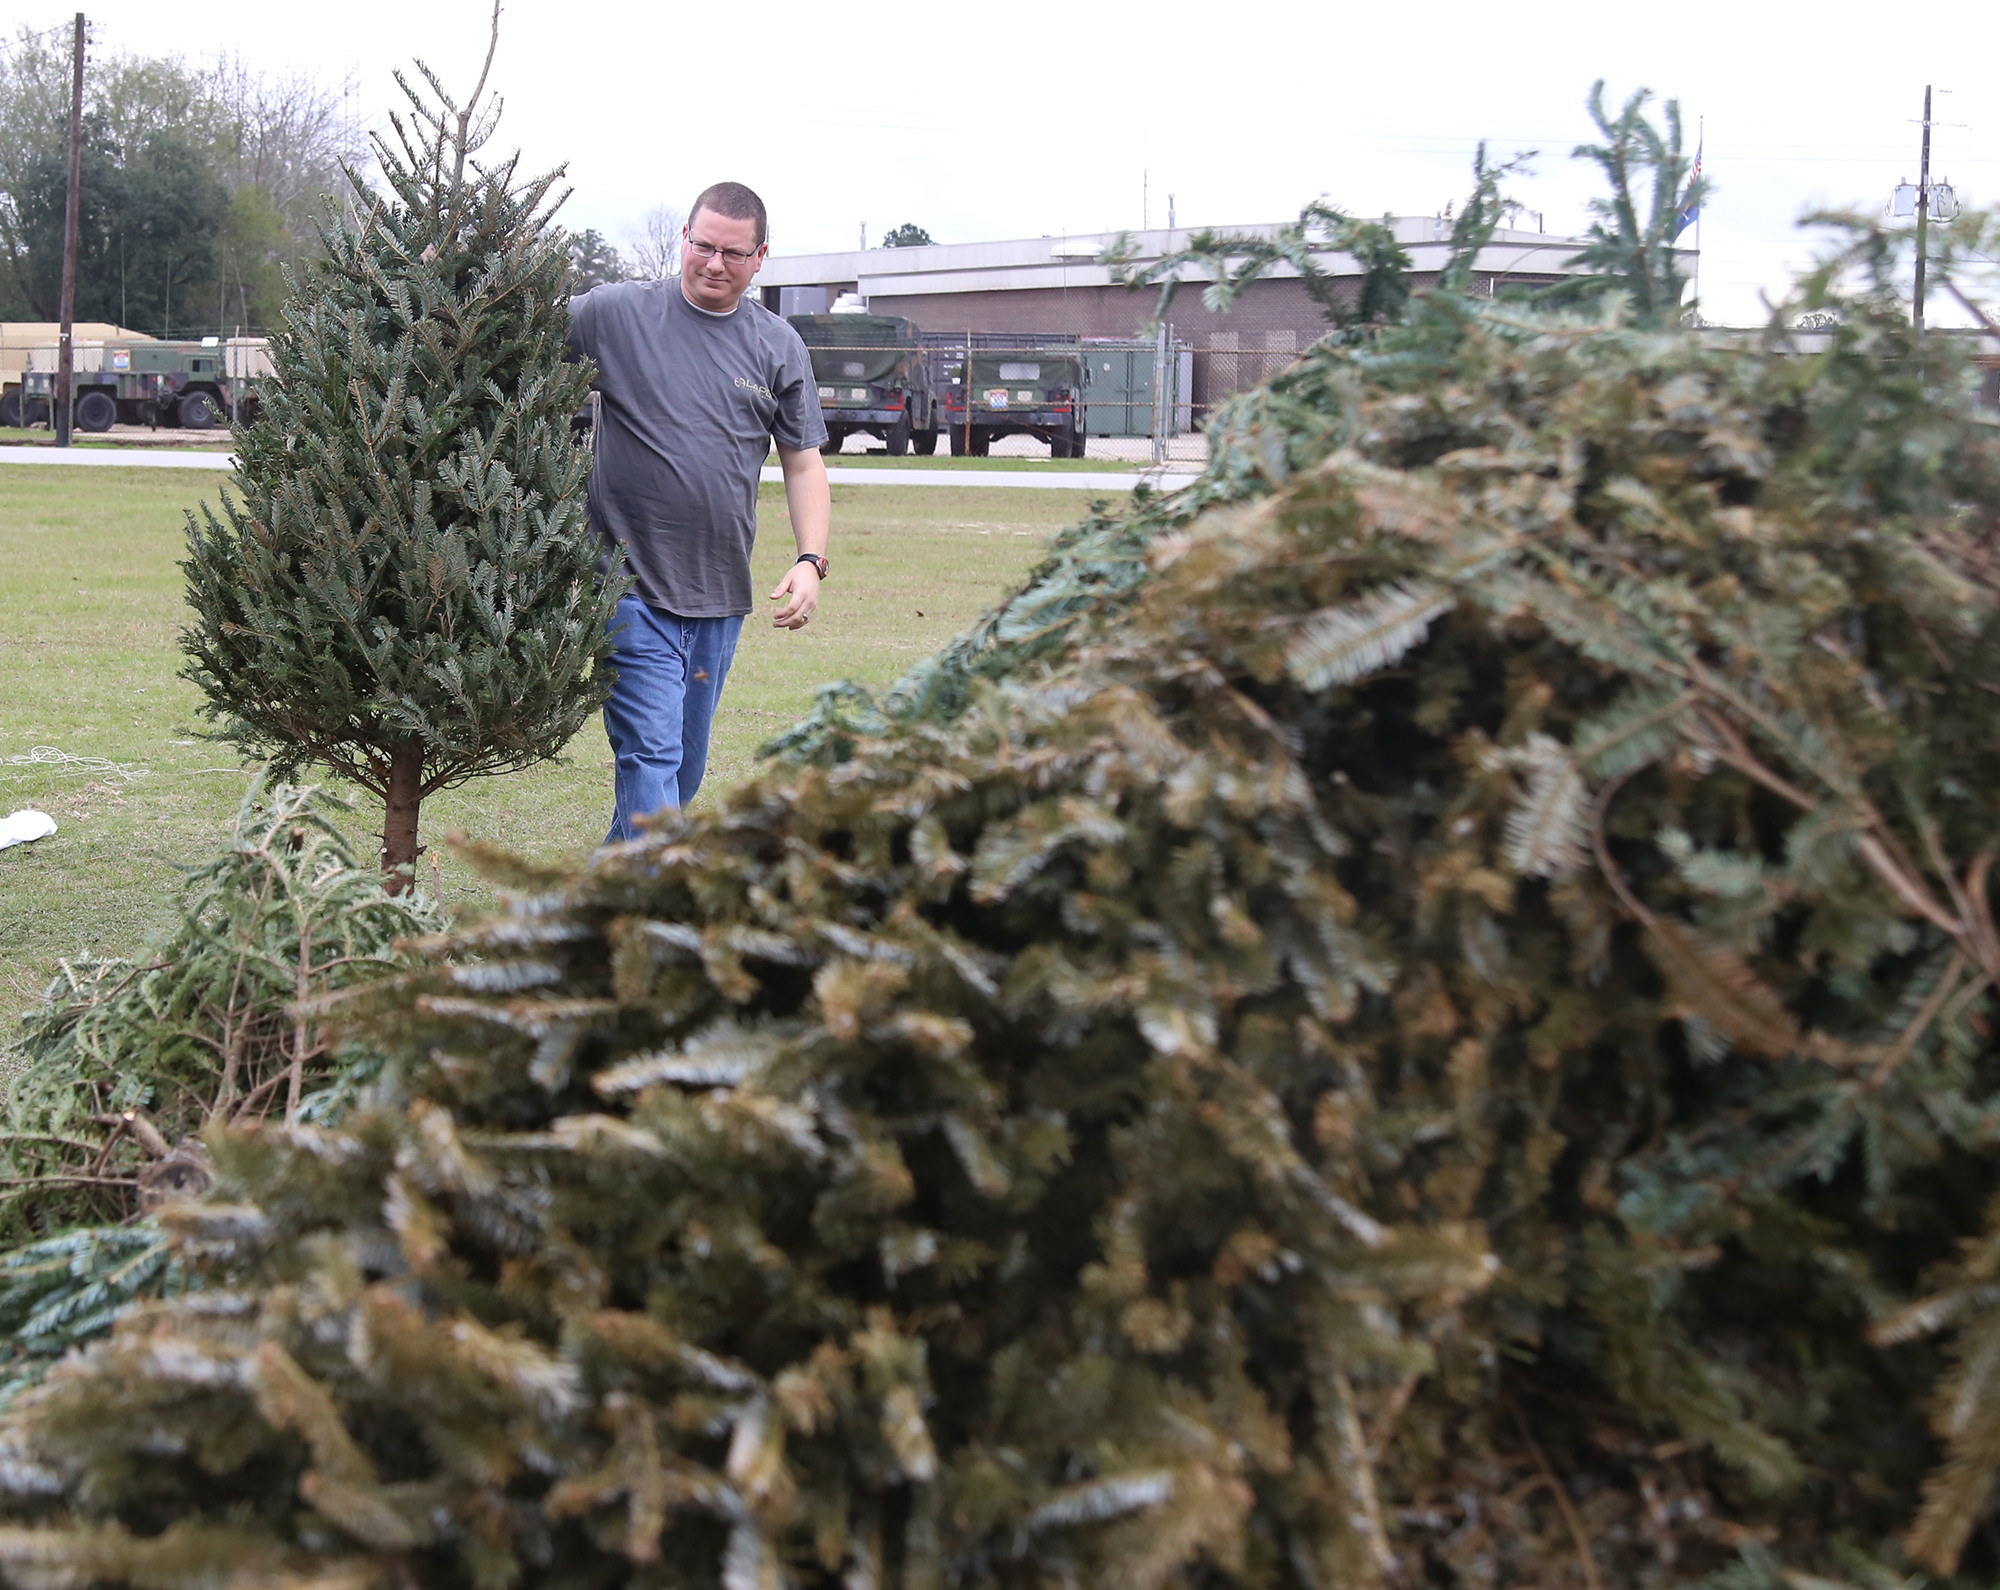 Chris Merendino drops off his Christmas Tree at the Grinding of the Greens location at the front of Dillon Park at a past year's event. Free mulch from this year's Grinding of the Greens will be available at Dillon Park on Saturday beginning at 7 a.m.